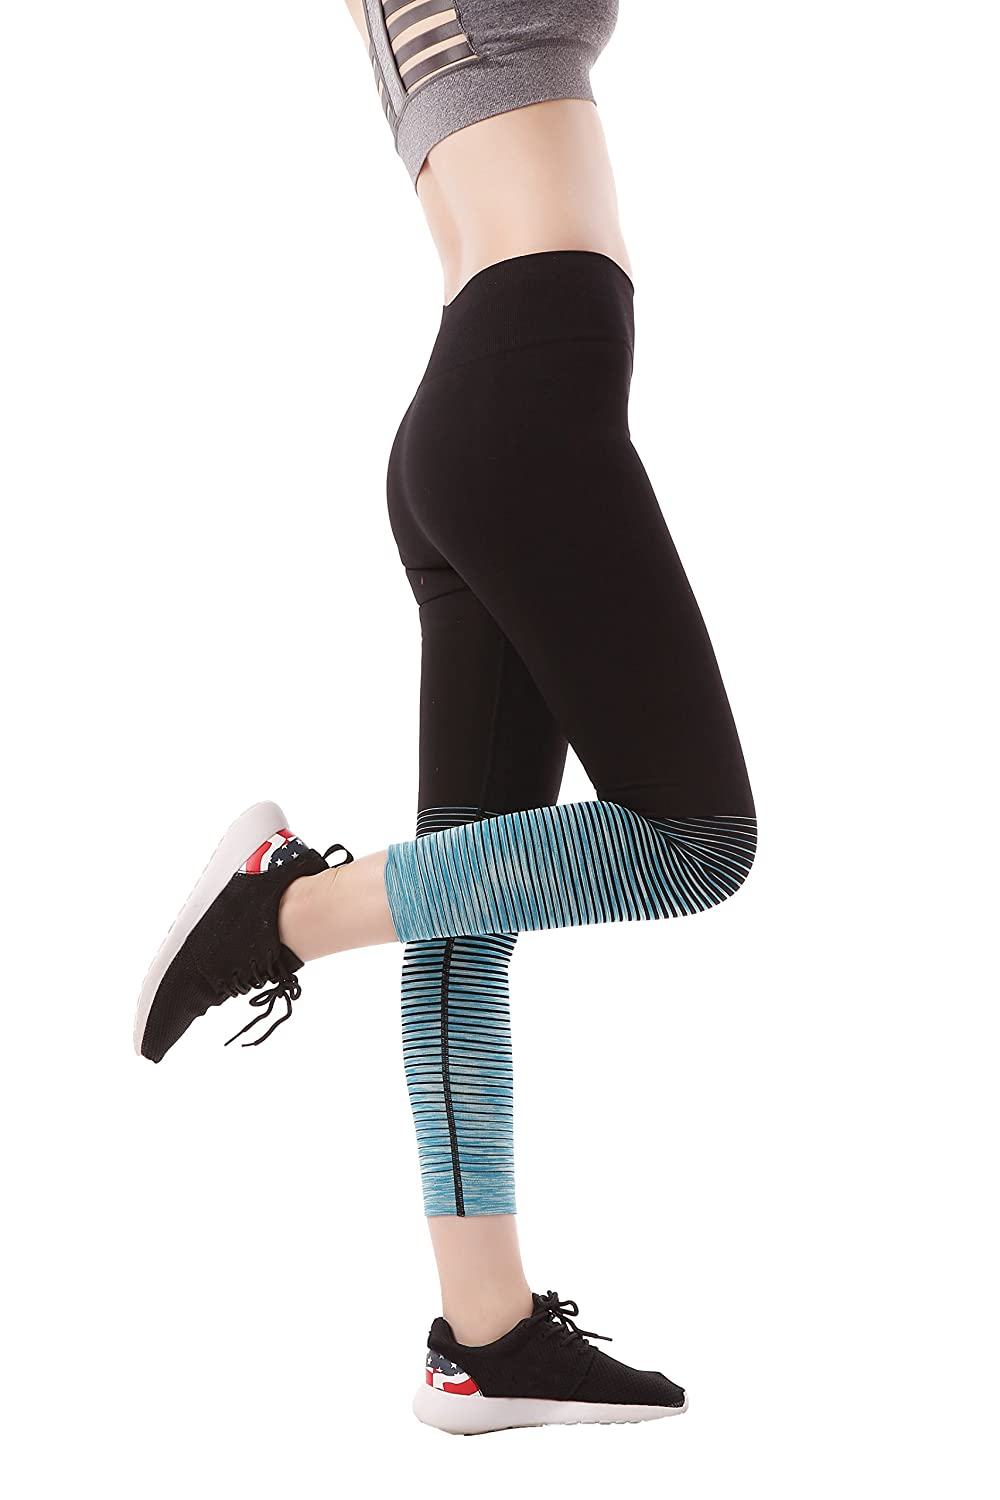 06e757a9b8 Material: Our high waisted women\'s yoga pants are made from  65%Nylon,30%Polyester,5%Spandex, cool, super soft and stretch to give you  freedom of movements ...